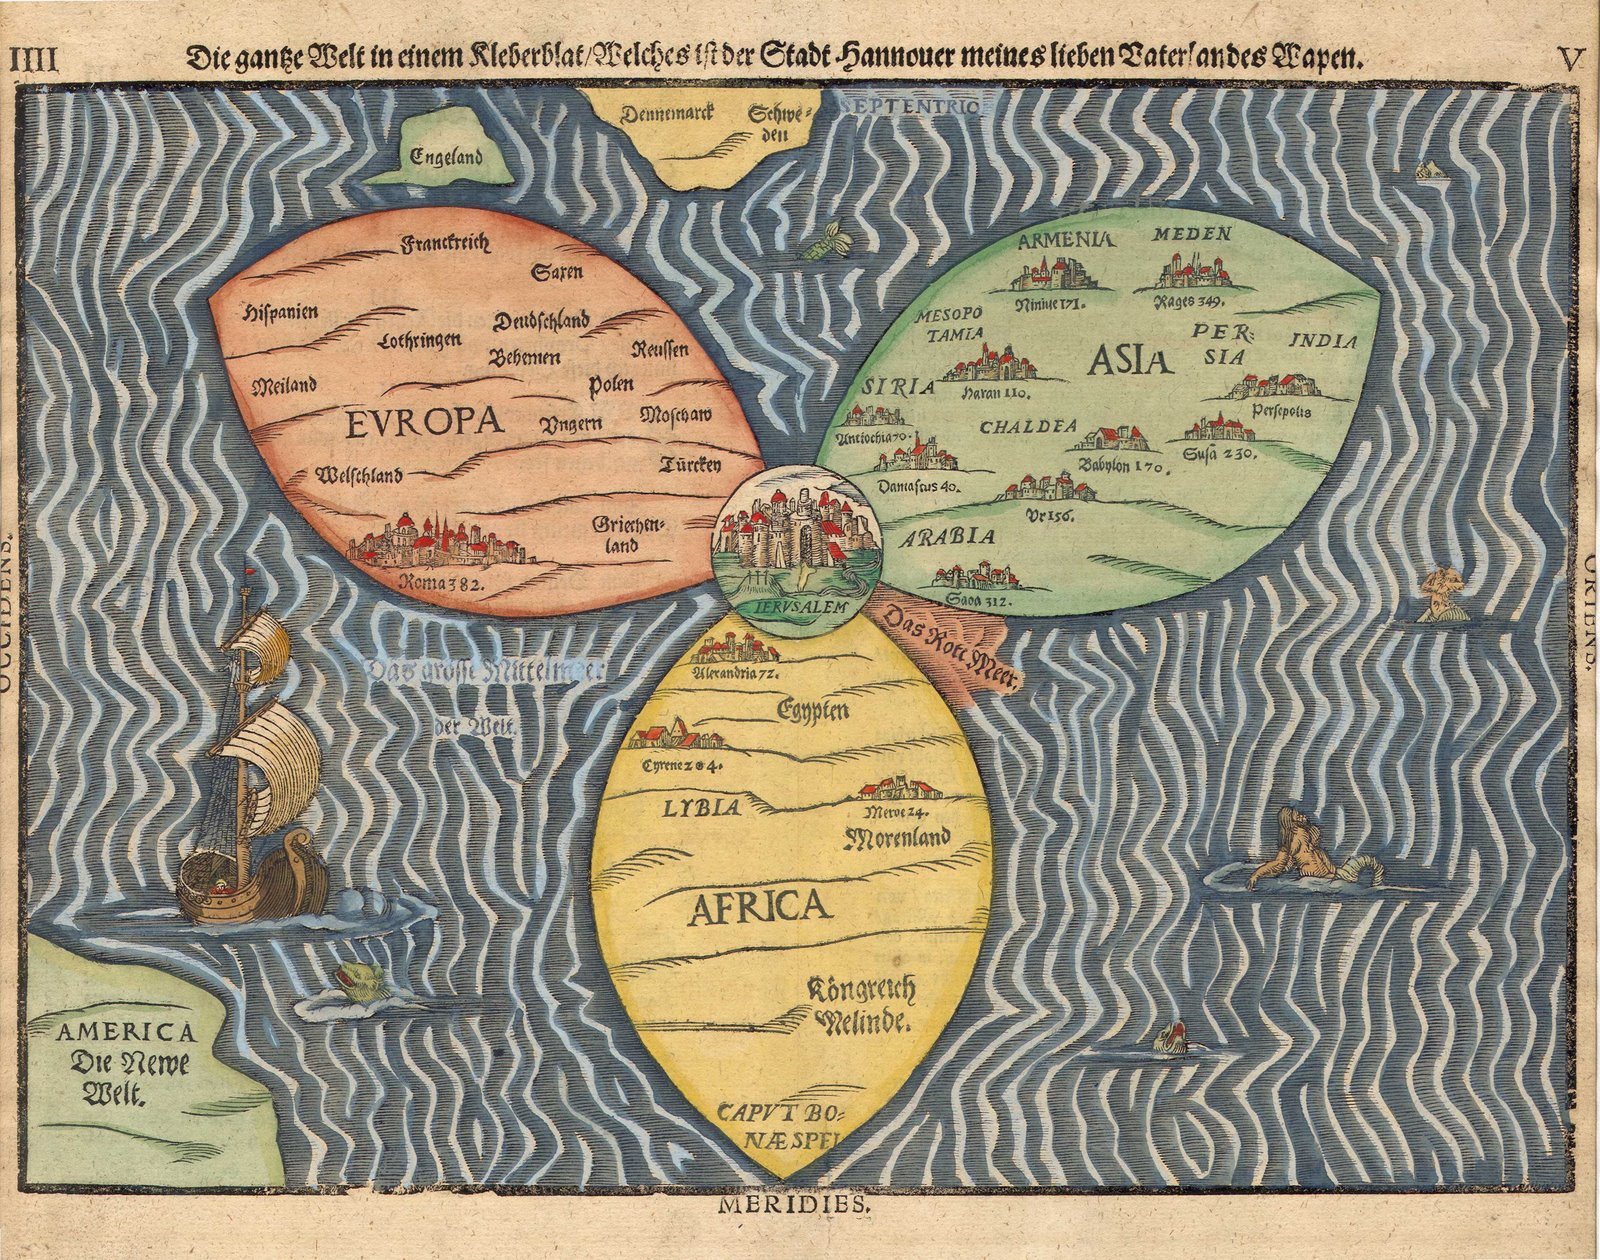 Ancient world maps world map 16th century description bunting clover leaf map with jerusalem in the center sourrounded by europe asia and africa published 1581 in magdeburggermany gumiabroncs Images